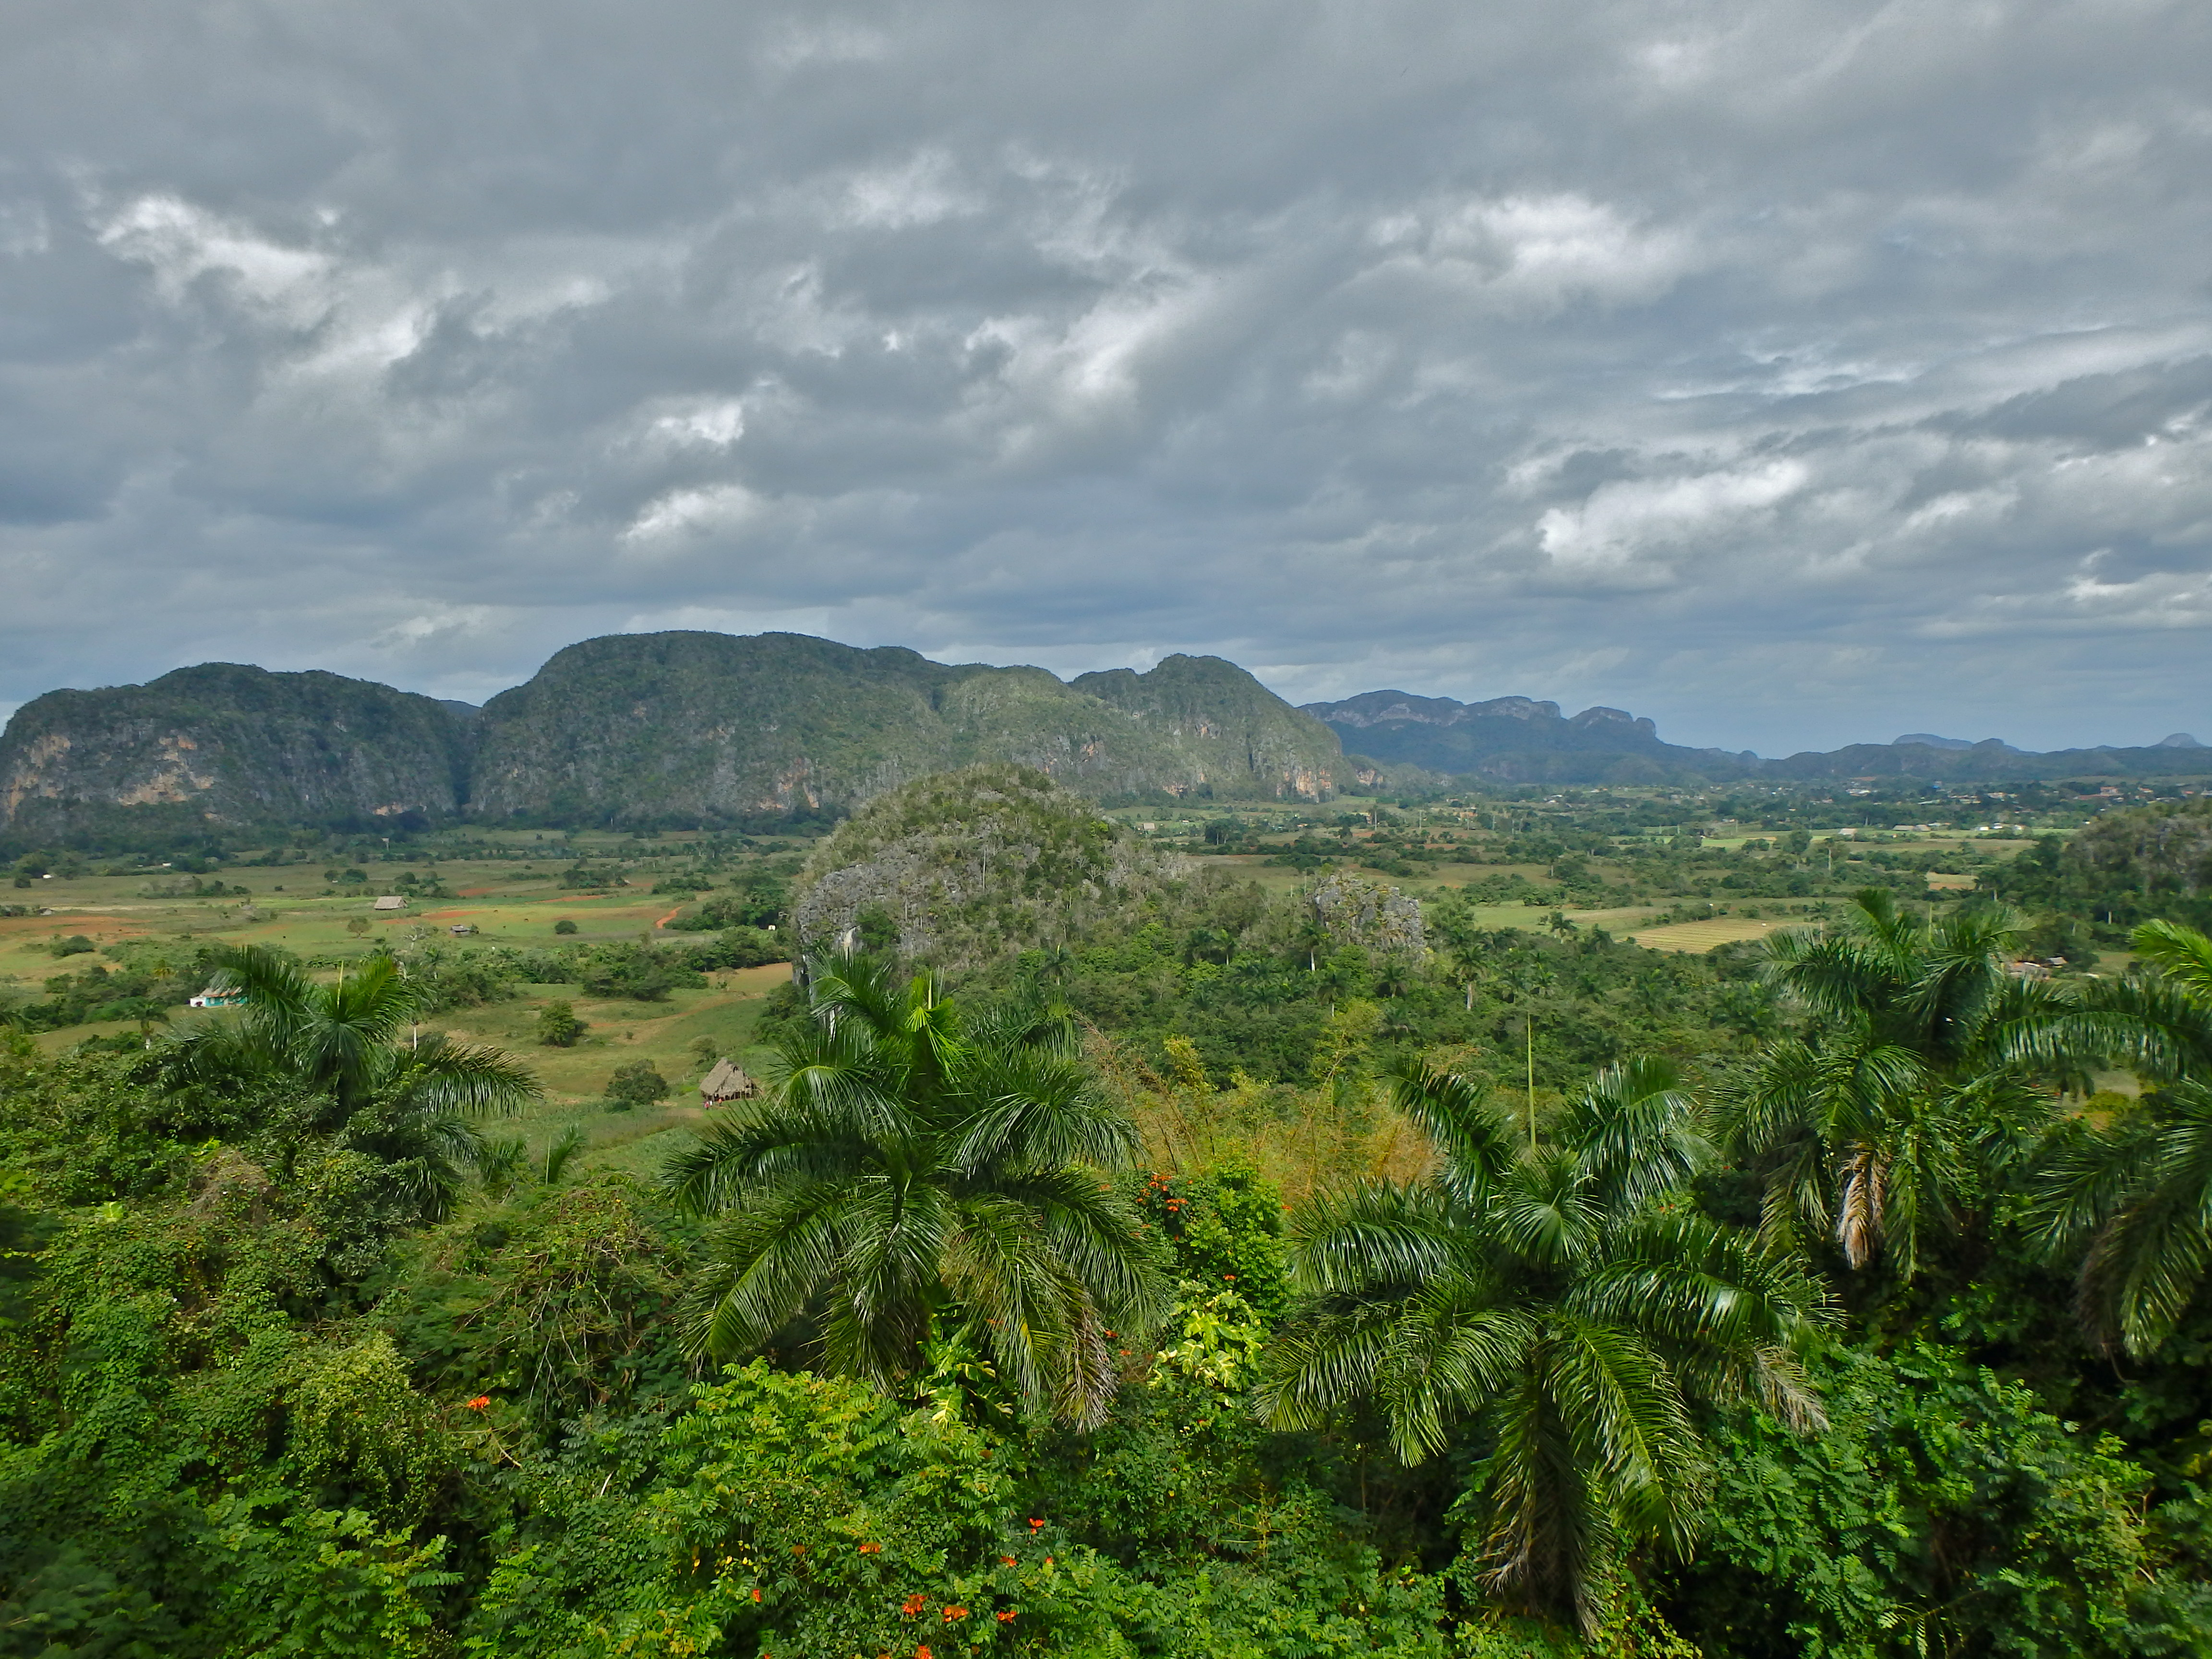 Vinales Valley tours sunset tours in vinales things to see in vinales cuba where to visit in cuba